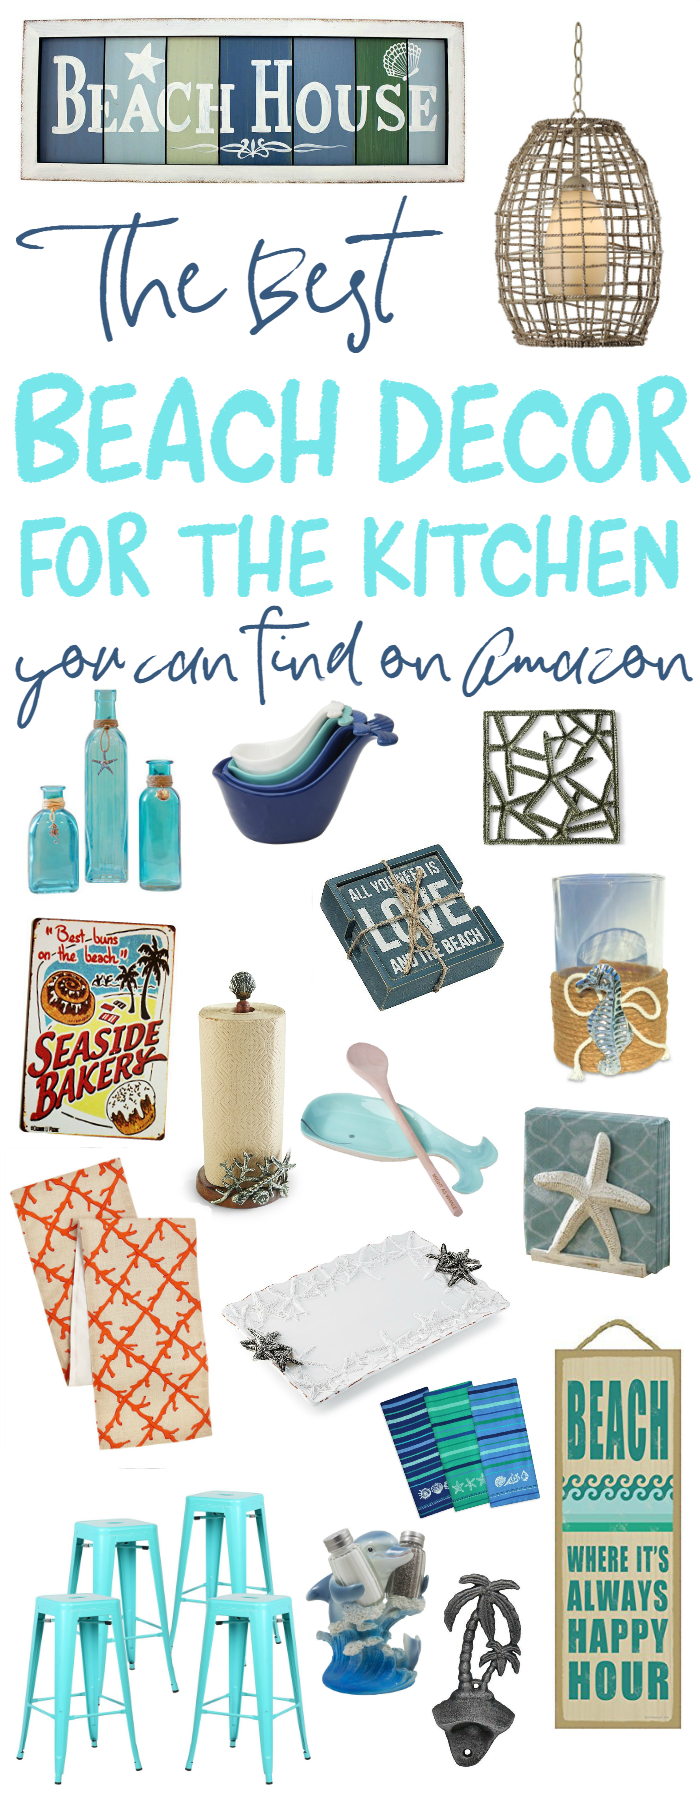 The Best Beach Decor For The Kitchen On Amazon For The Home